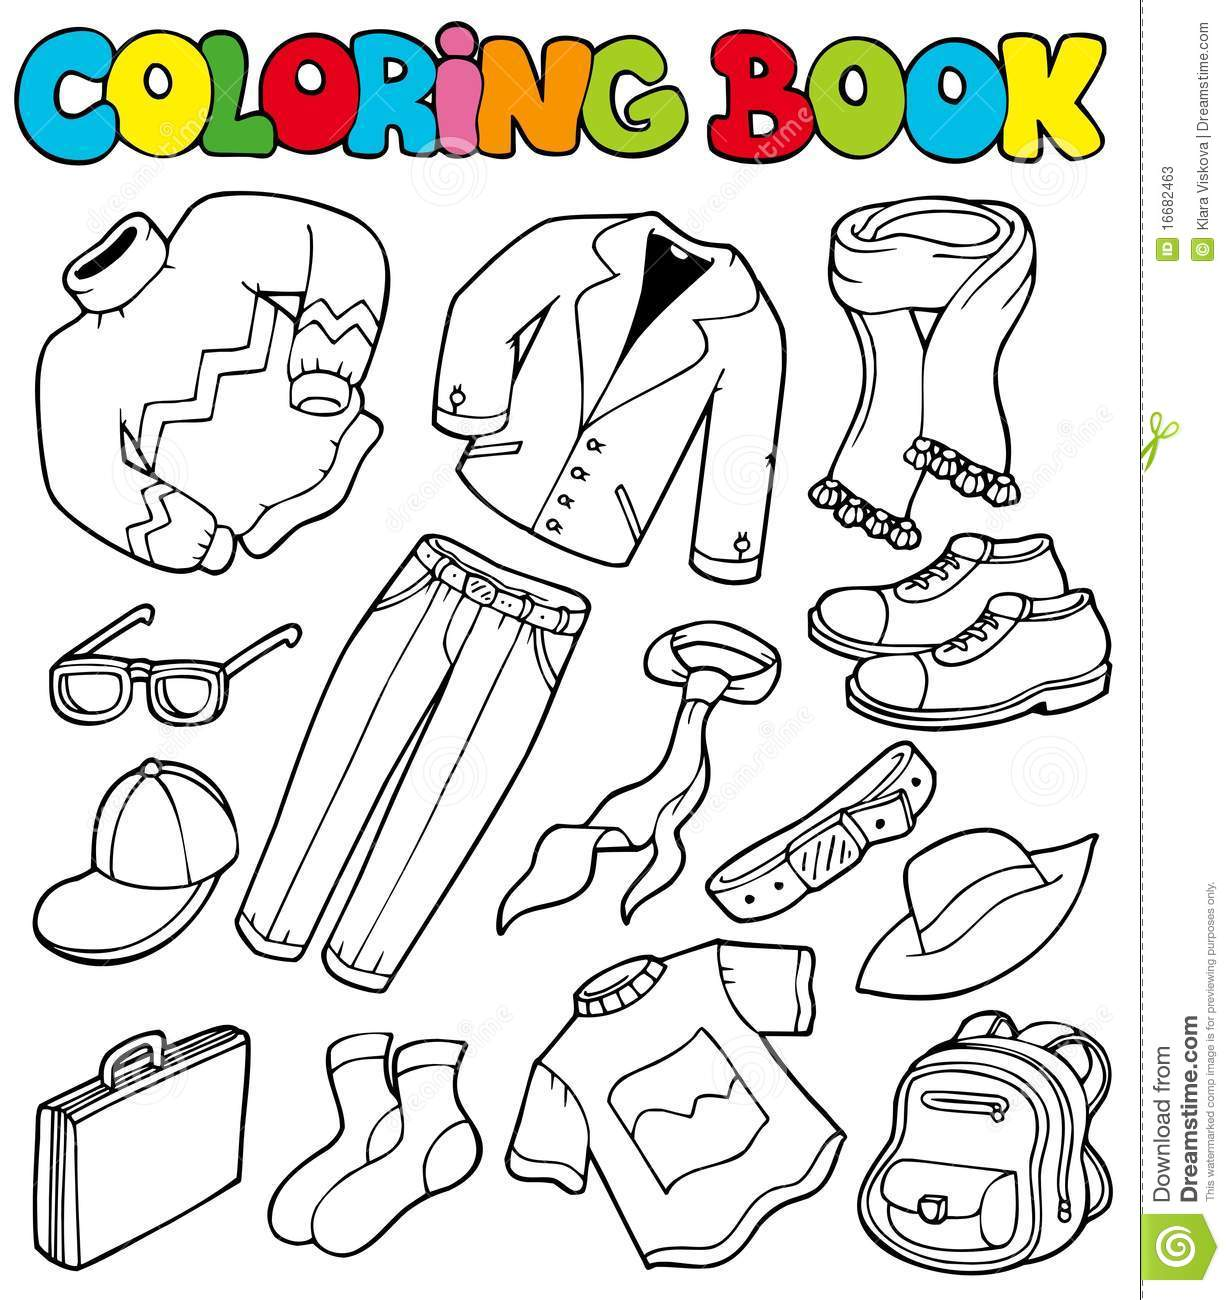 More similar stock images of ` Coloring book with apparel 1 `